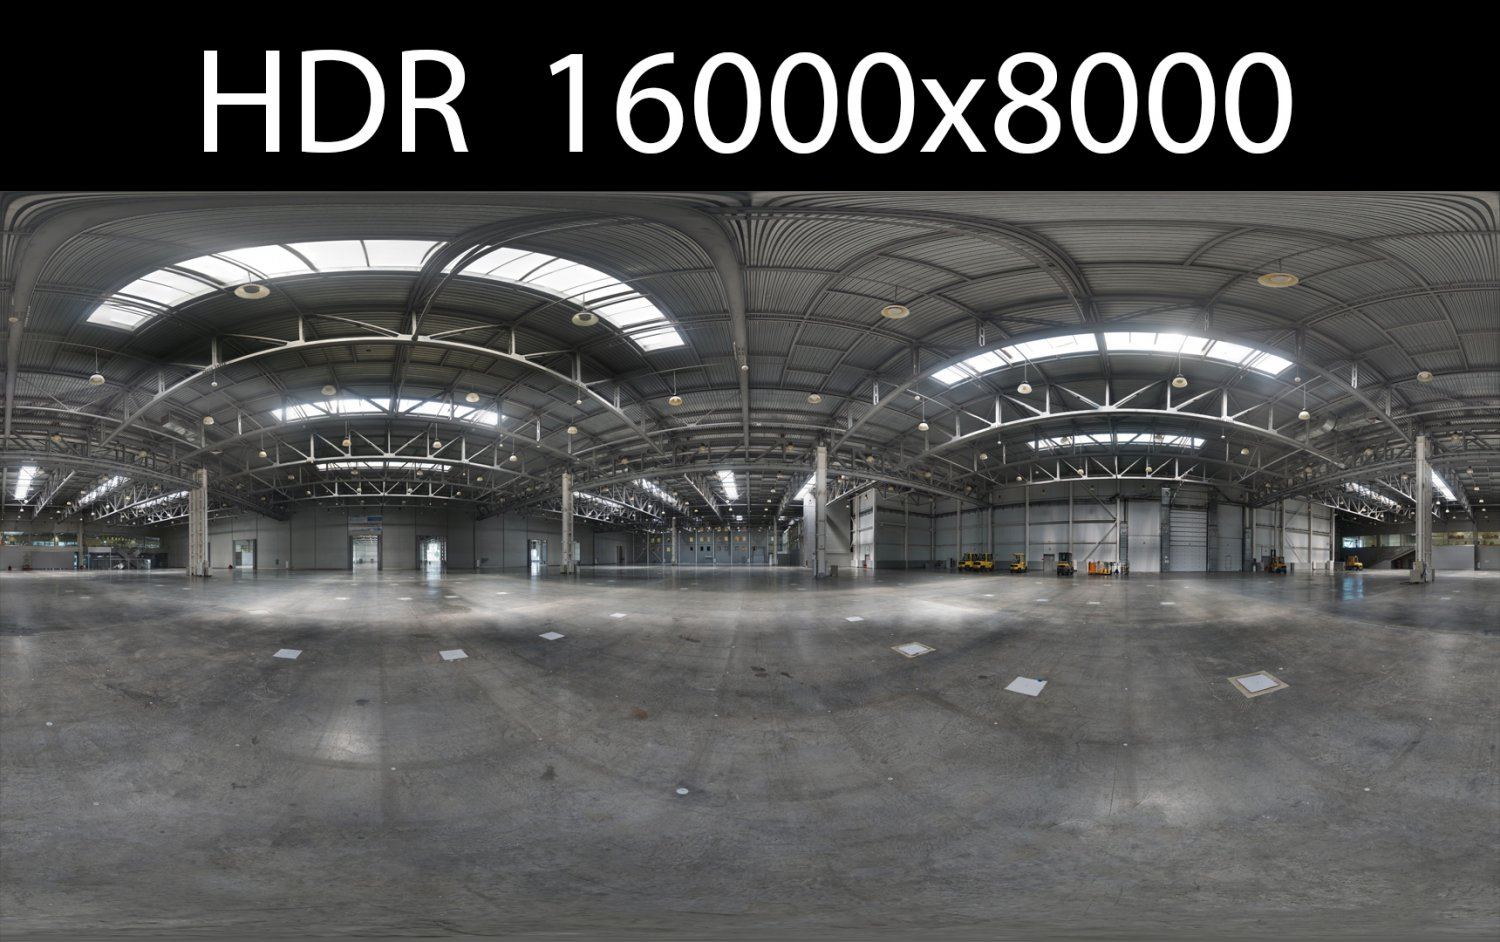 Exhibition Hall D Model : List of synonyms and antonyms the word hdri images for d